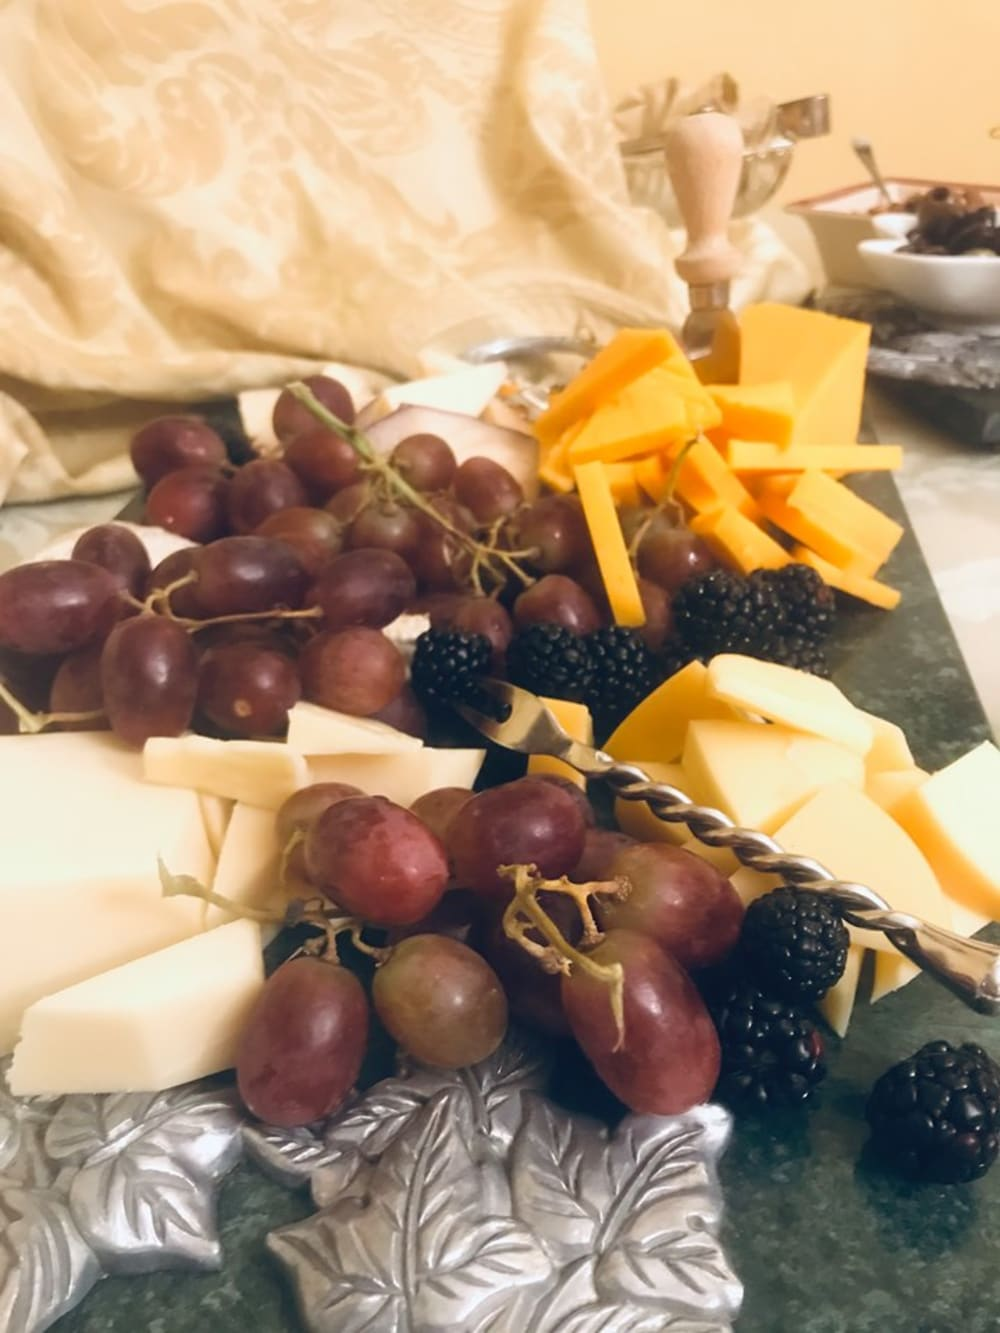 January Asheville Events - Food and More Food!